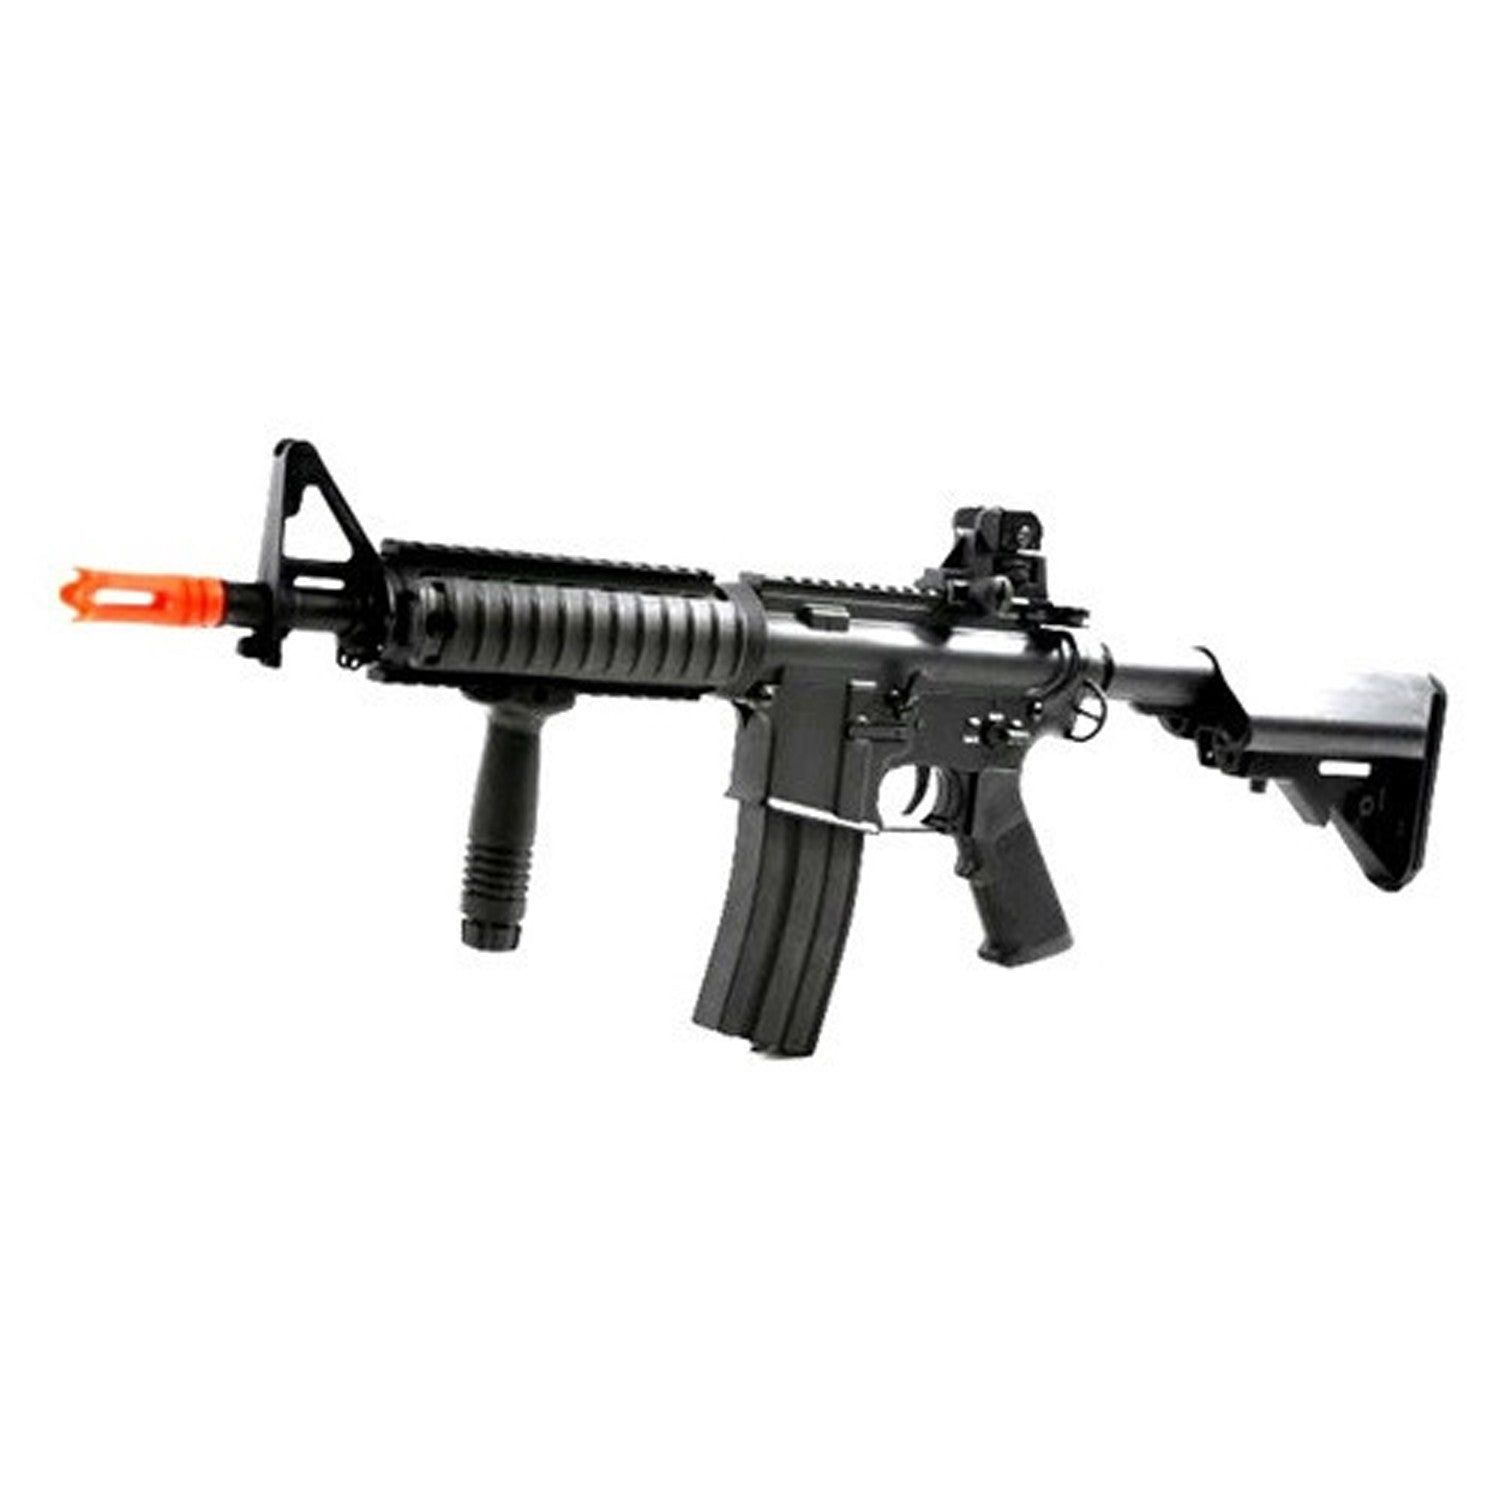 Airsoft DBoys Full Metal M4 CQB-R AEG Rifle w/ Reinforced High-Performance Metal Gearbox - Operation: Electric Automatic Body: Full Metal Receiver, Stock Bar, Barrel, Pistol Grip Firing Modes: Semi-automatic and Full-automatic Muzzle Velocity: 350-400 FPS Magazine: 300-round high capacity (gear wind-up) Gearbox: Full metal